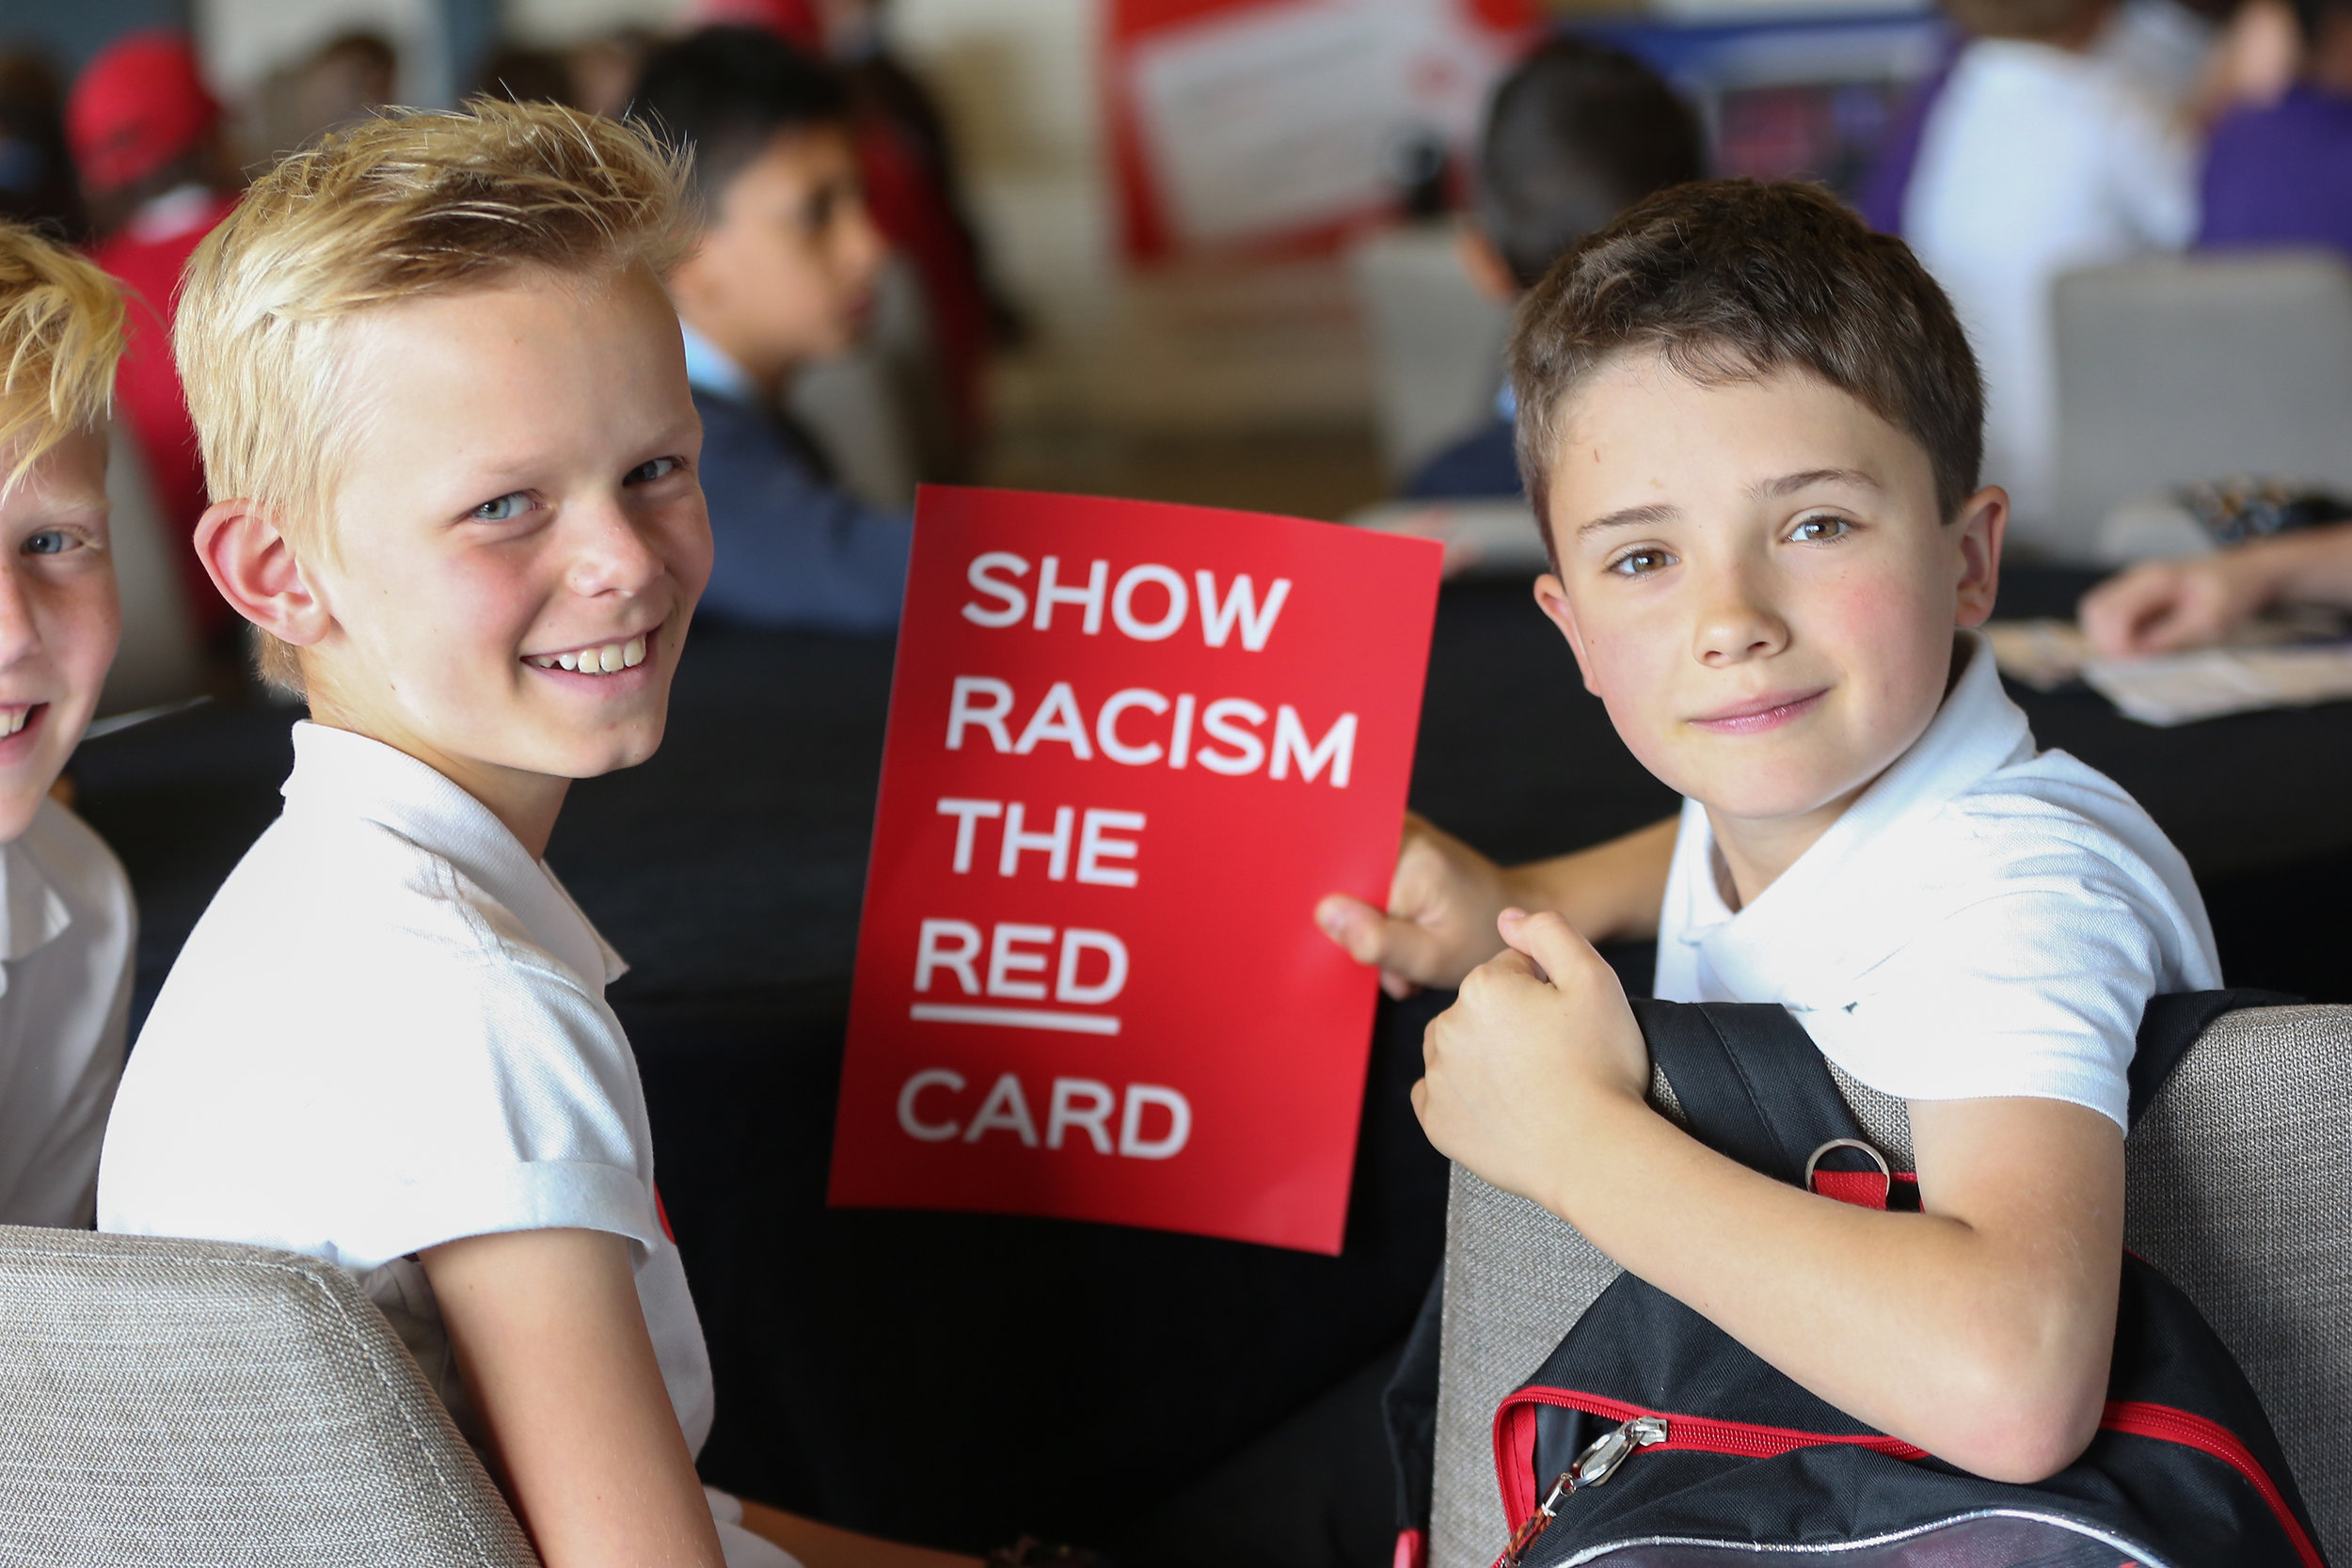 Show Racism the Red Card (7).JPG